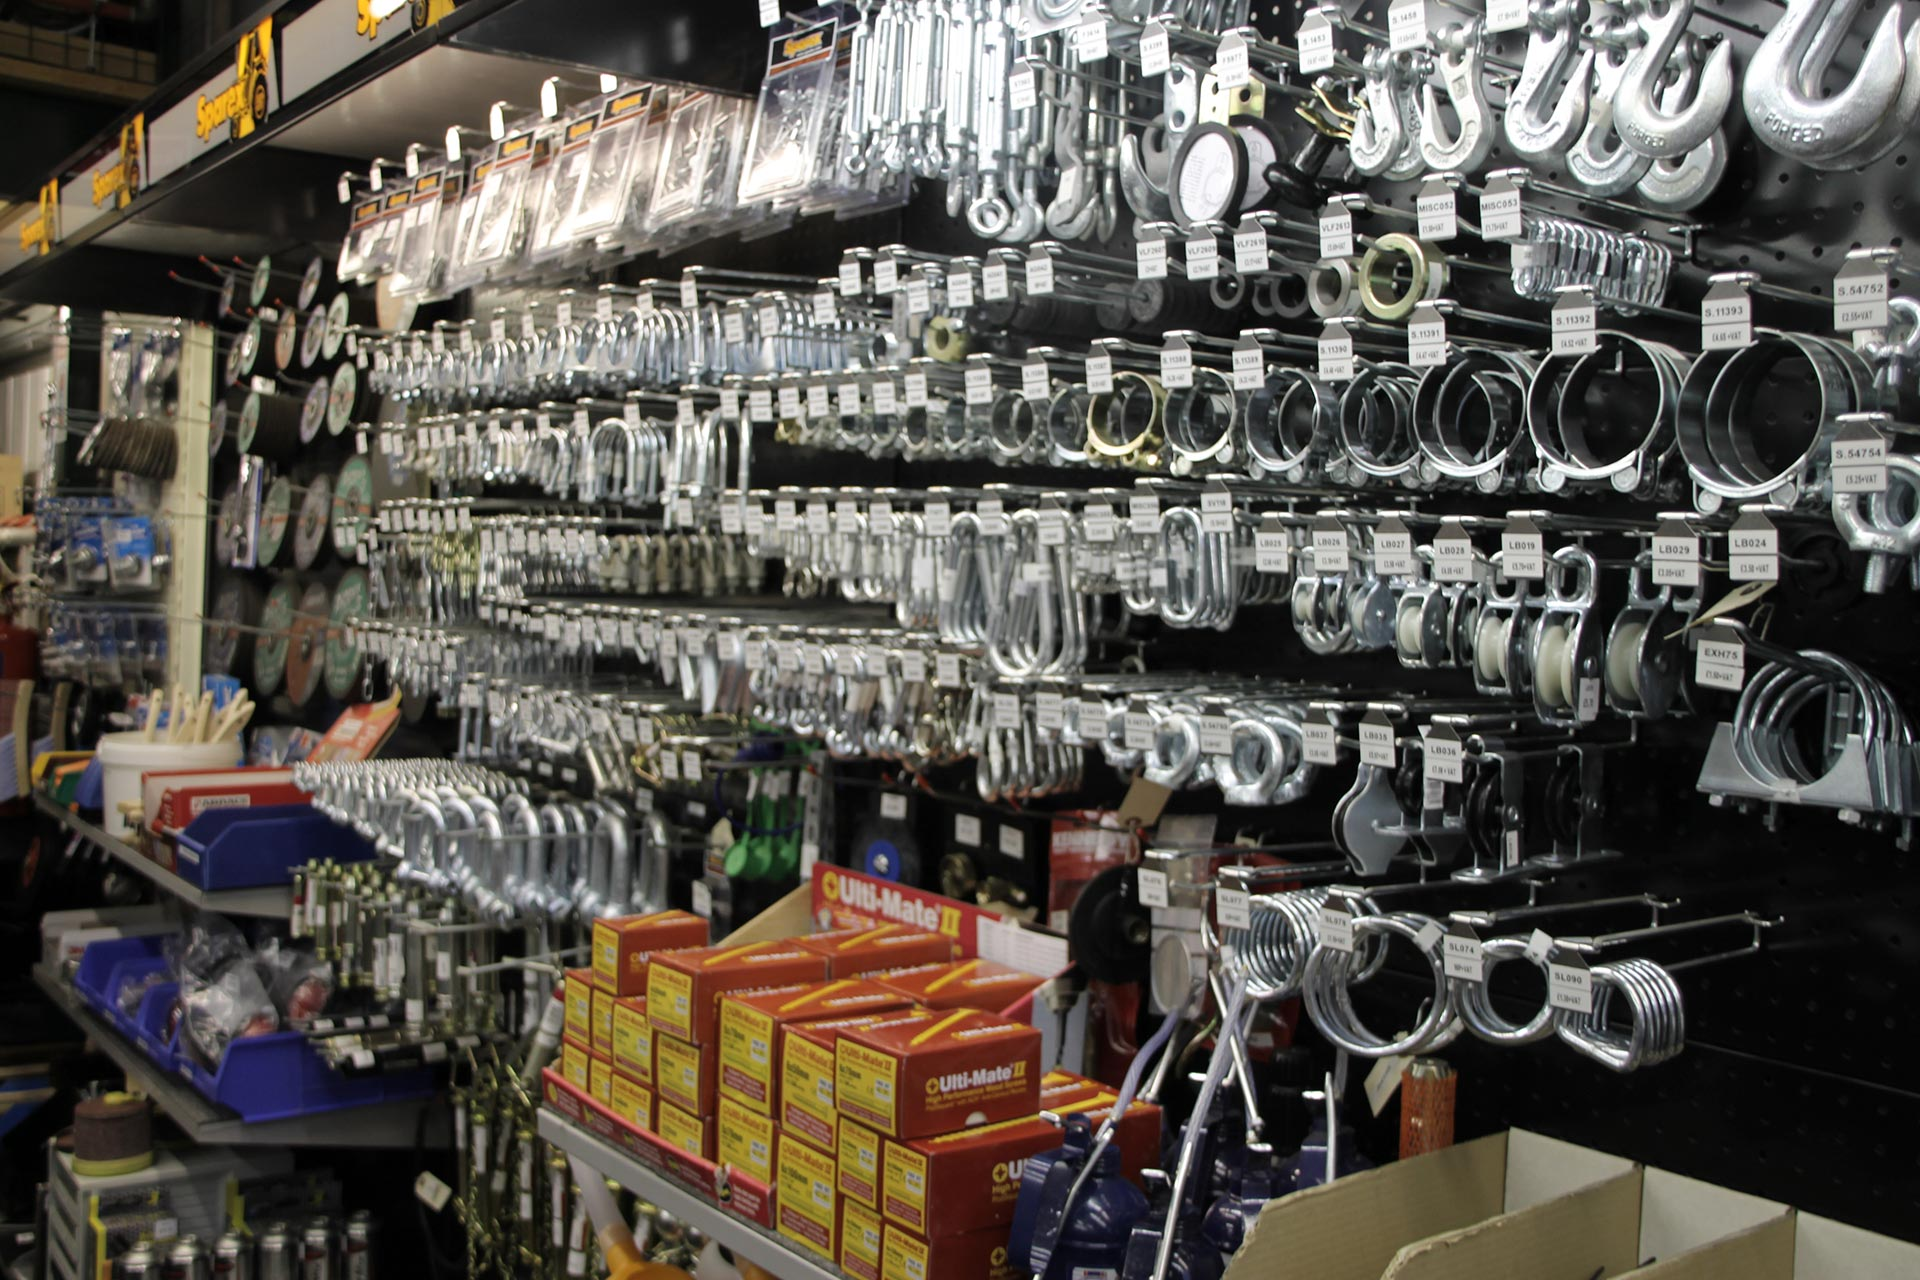 Extensive range of hardware and ironmongery